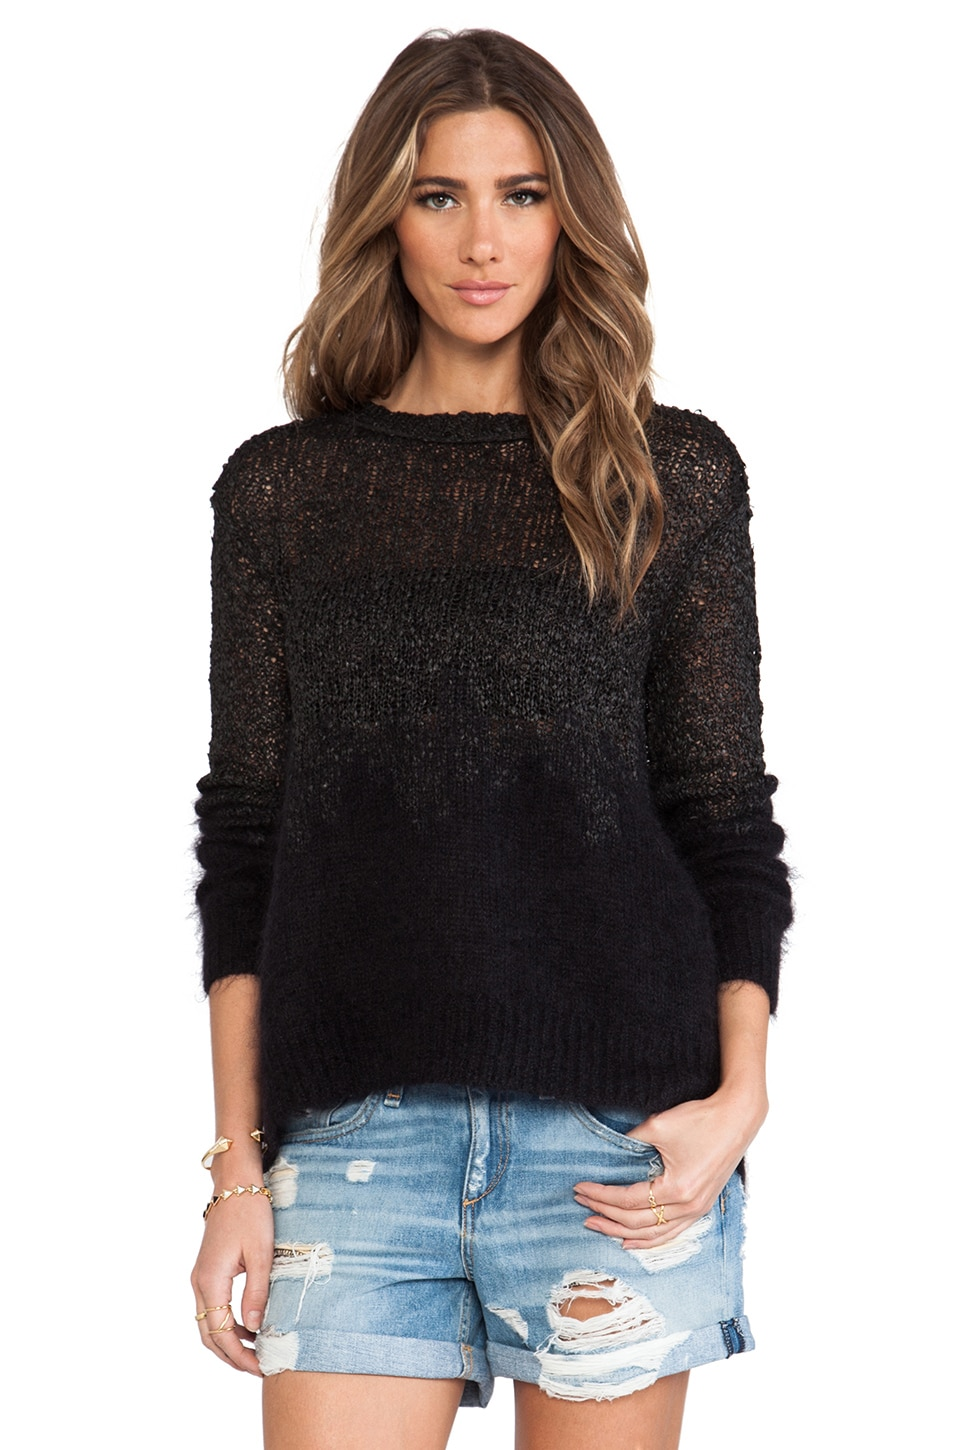 Inhabit Leather Ombre Sweater in Black